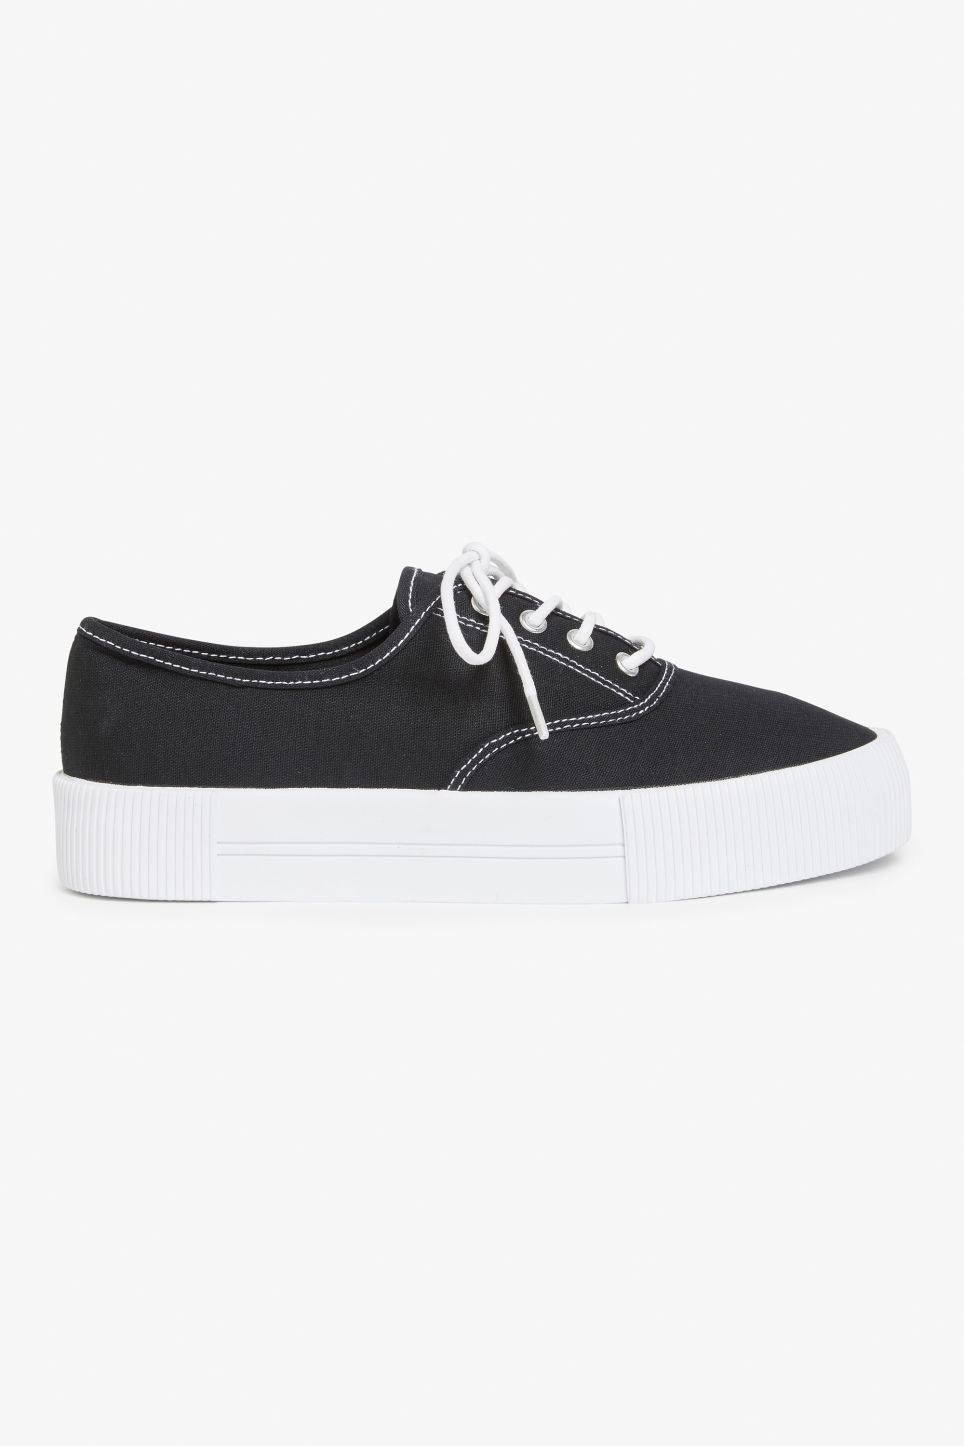 Detailed image of Monki lace-up sneakers in black